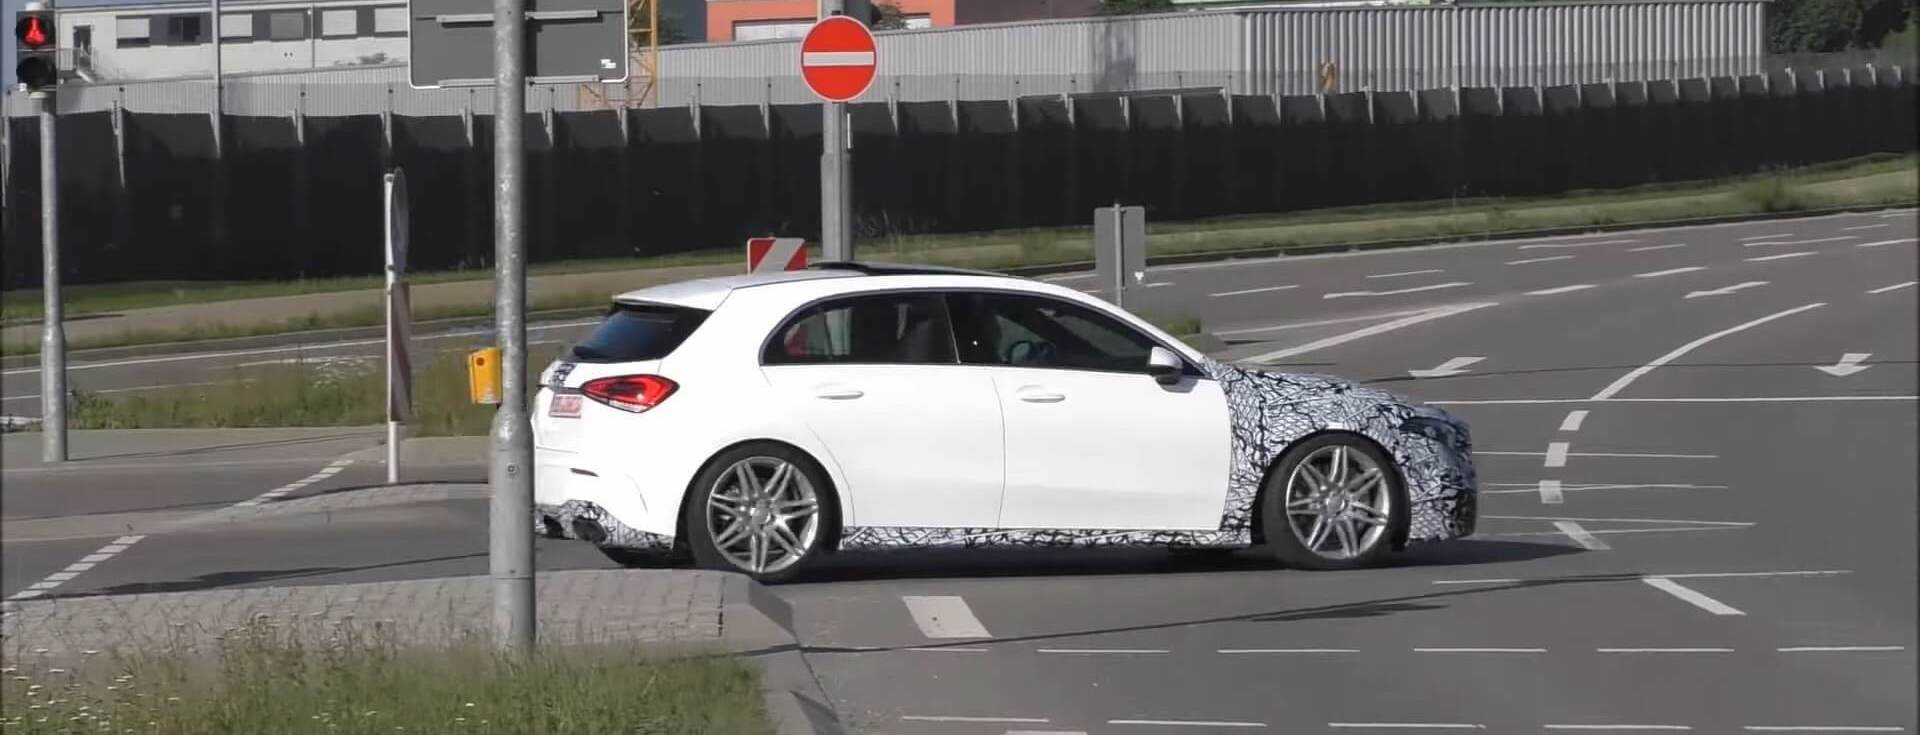 New Mercedes-Amg A45 Caught On The Move Riding Low